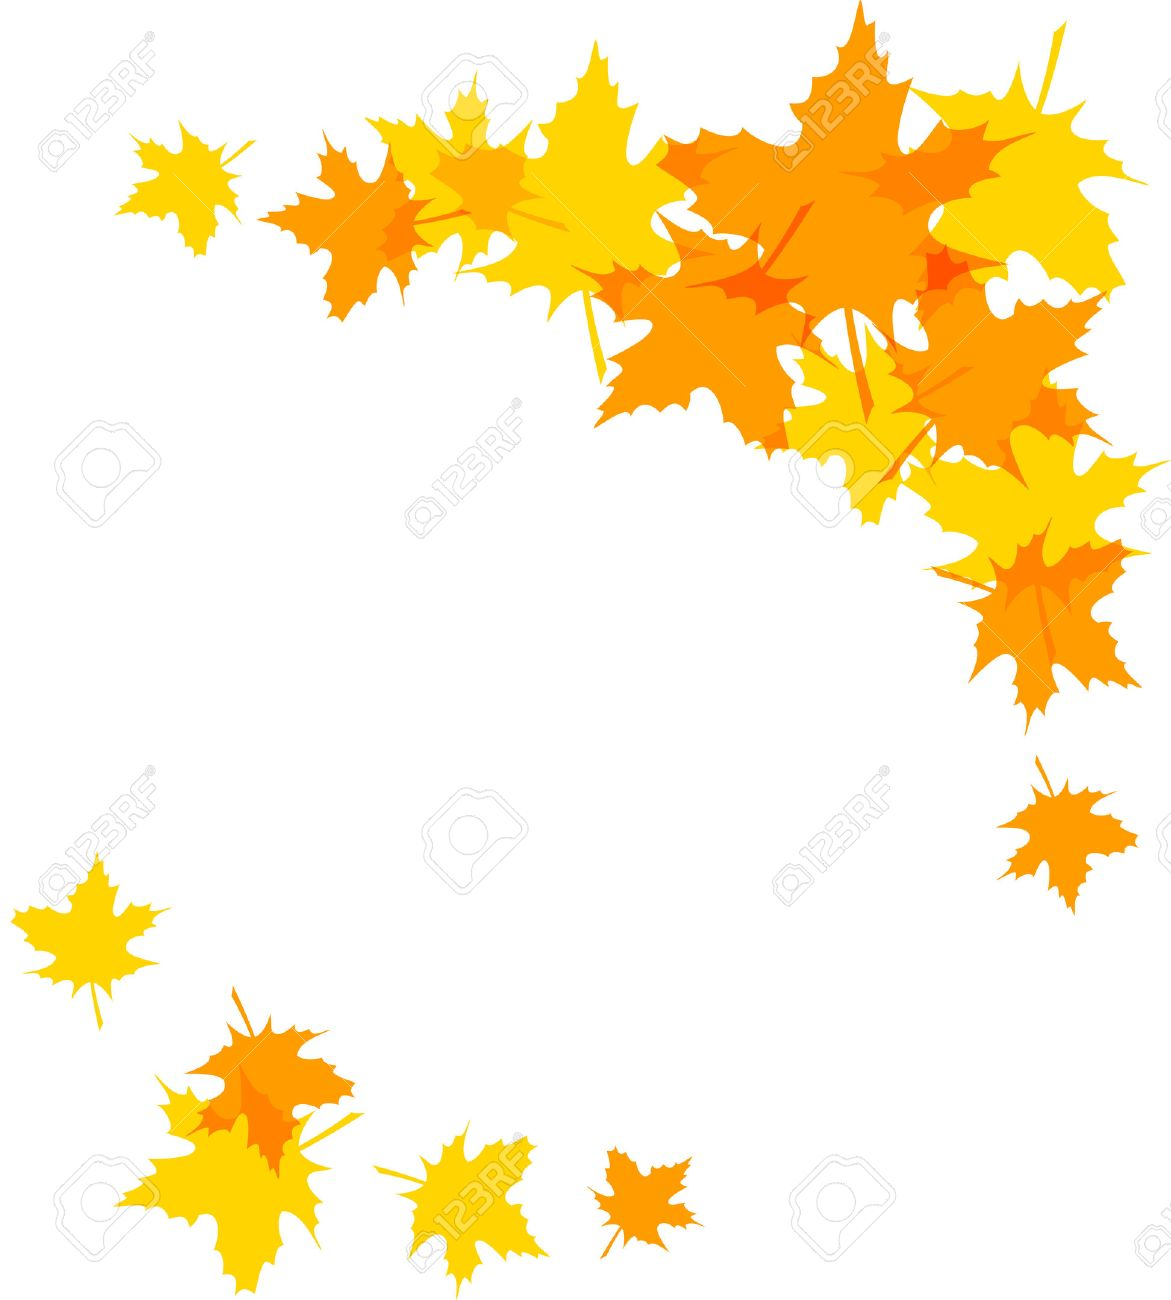 autumn leaves decorative borders isolated on white clip art royalty rh 123rf com Black and White Border Clip Art Leadership Clip Art